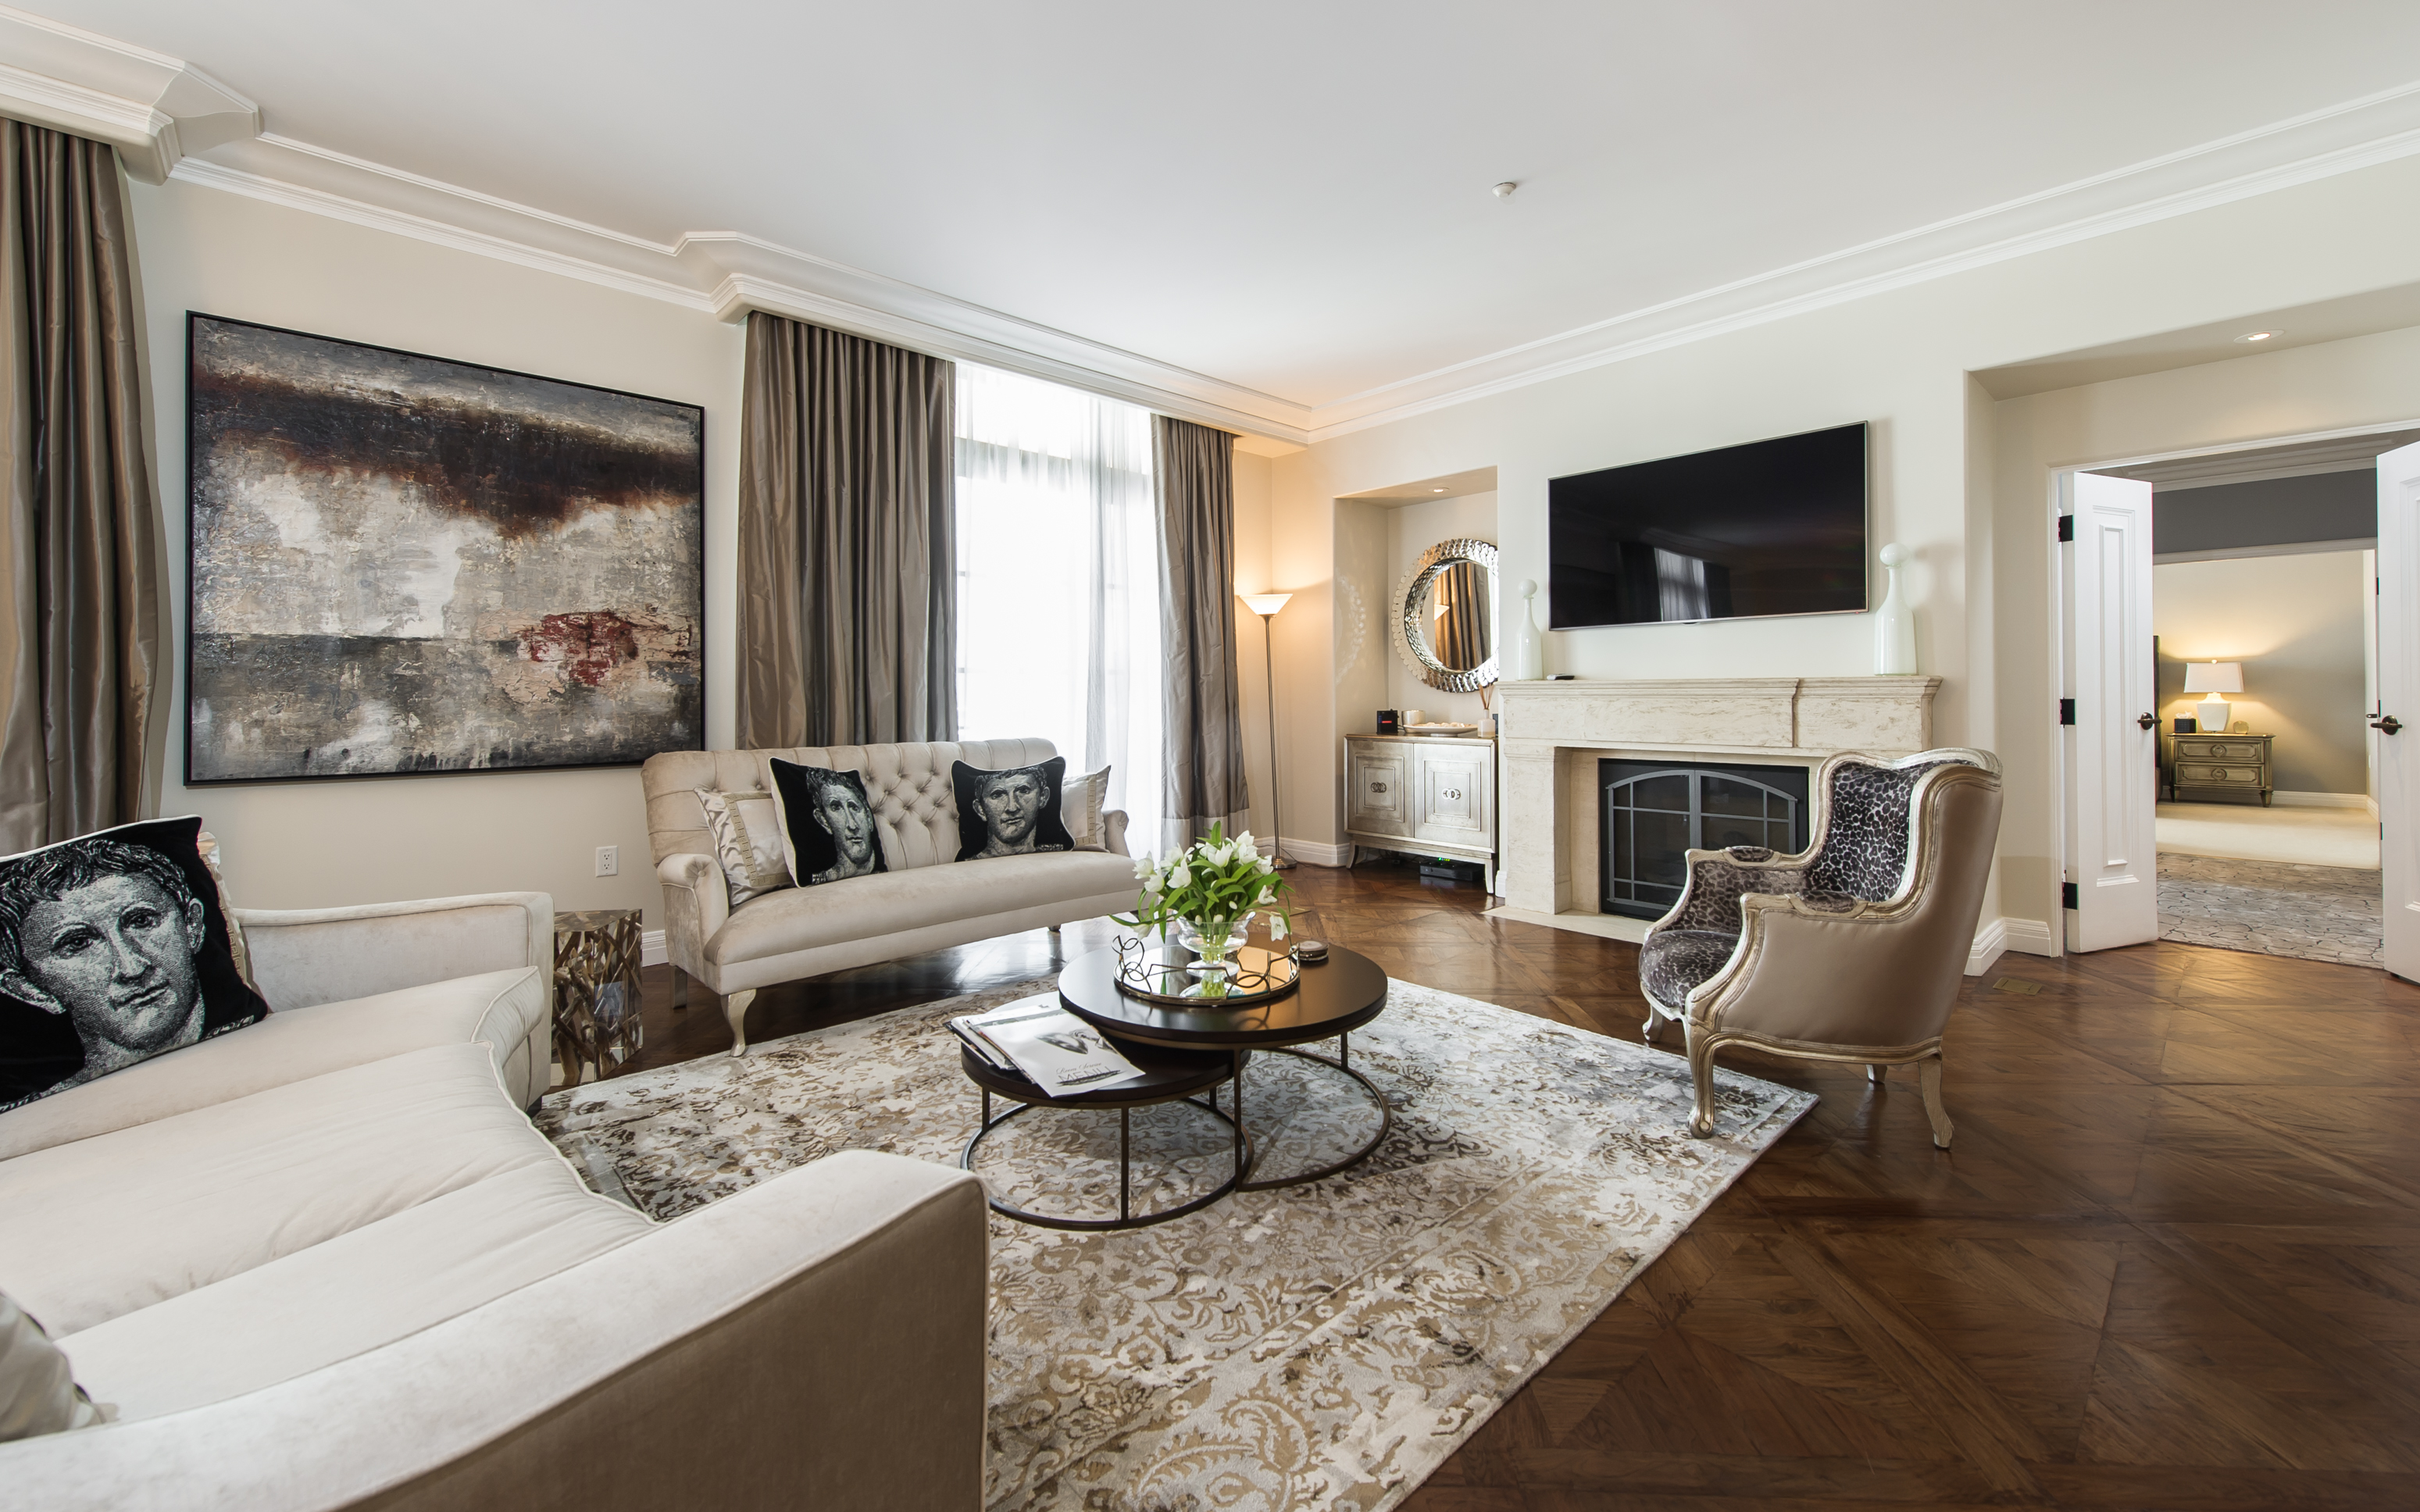 masterful condo at the montage residences 3 br for sale